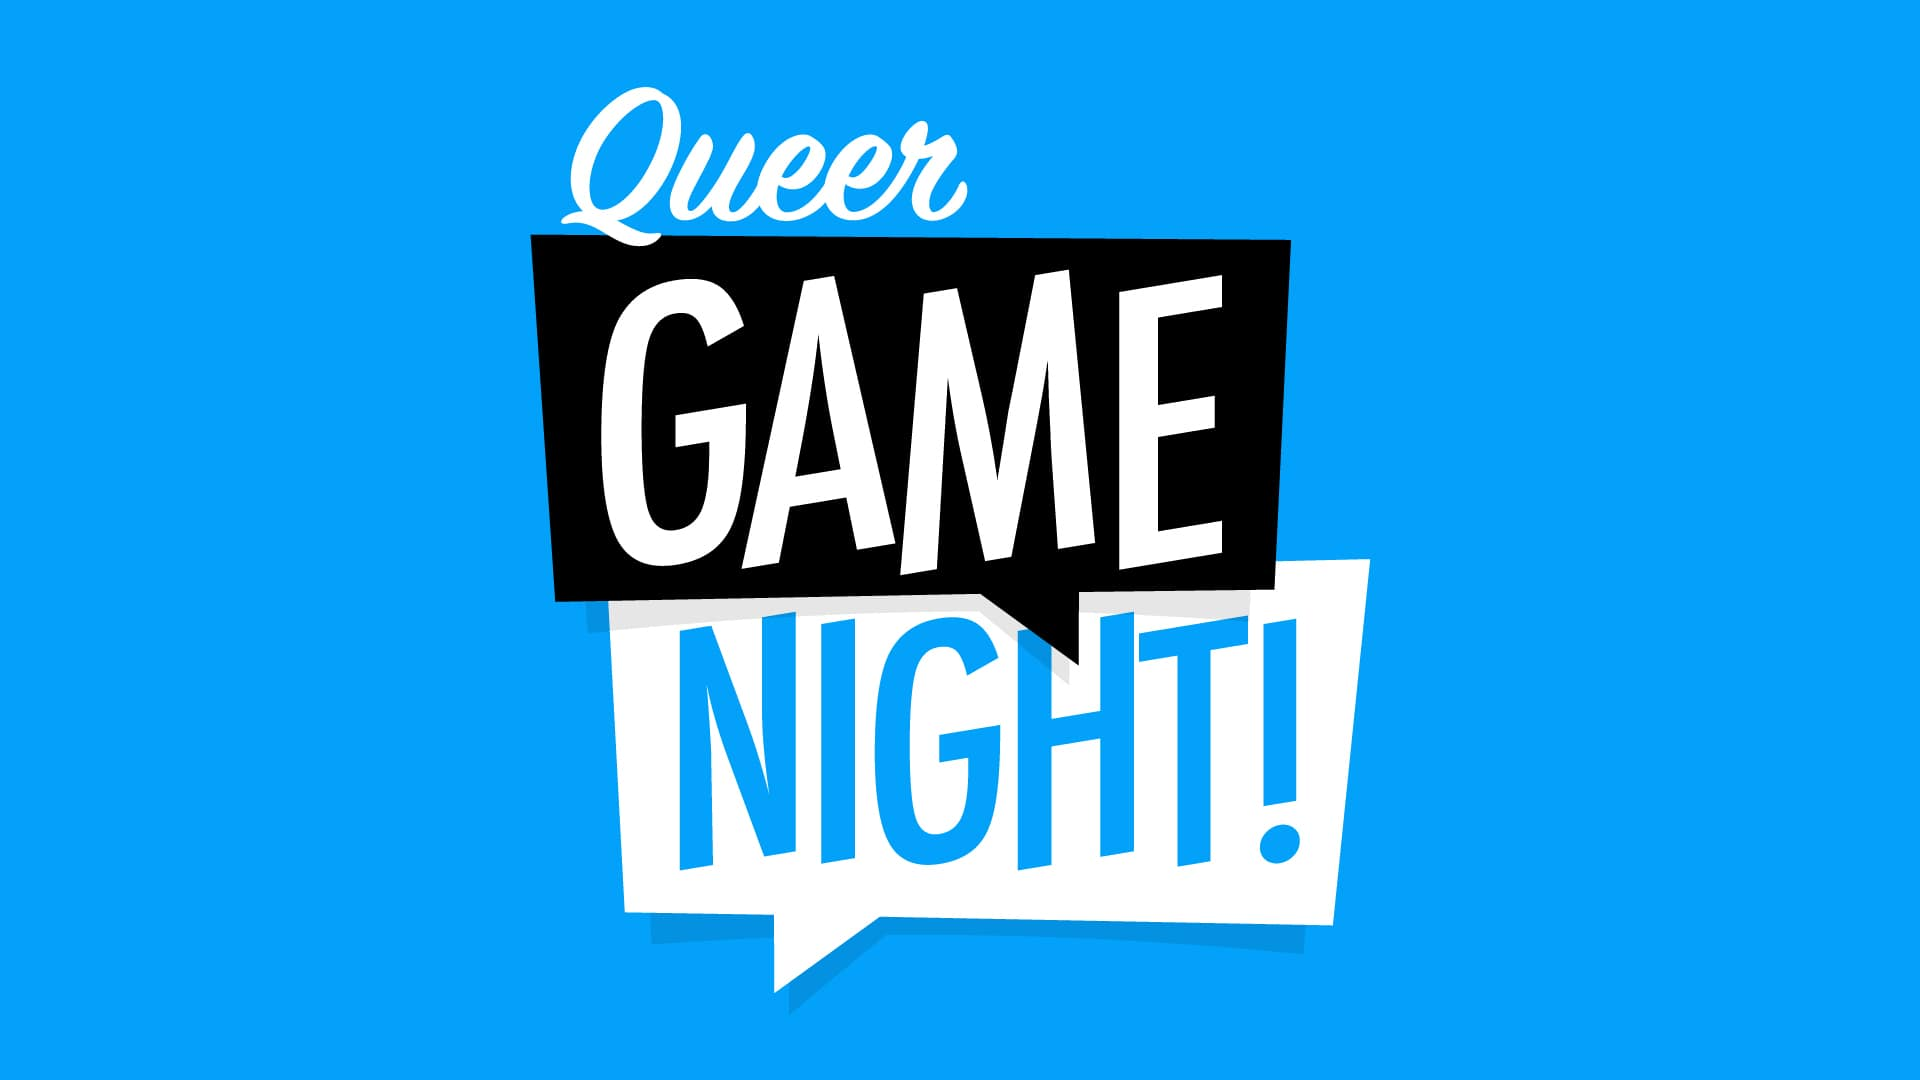 Queer Game NIght - Louisville Pride - Digital Pride